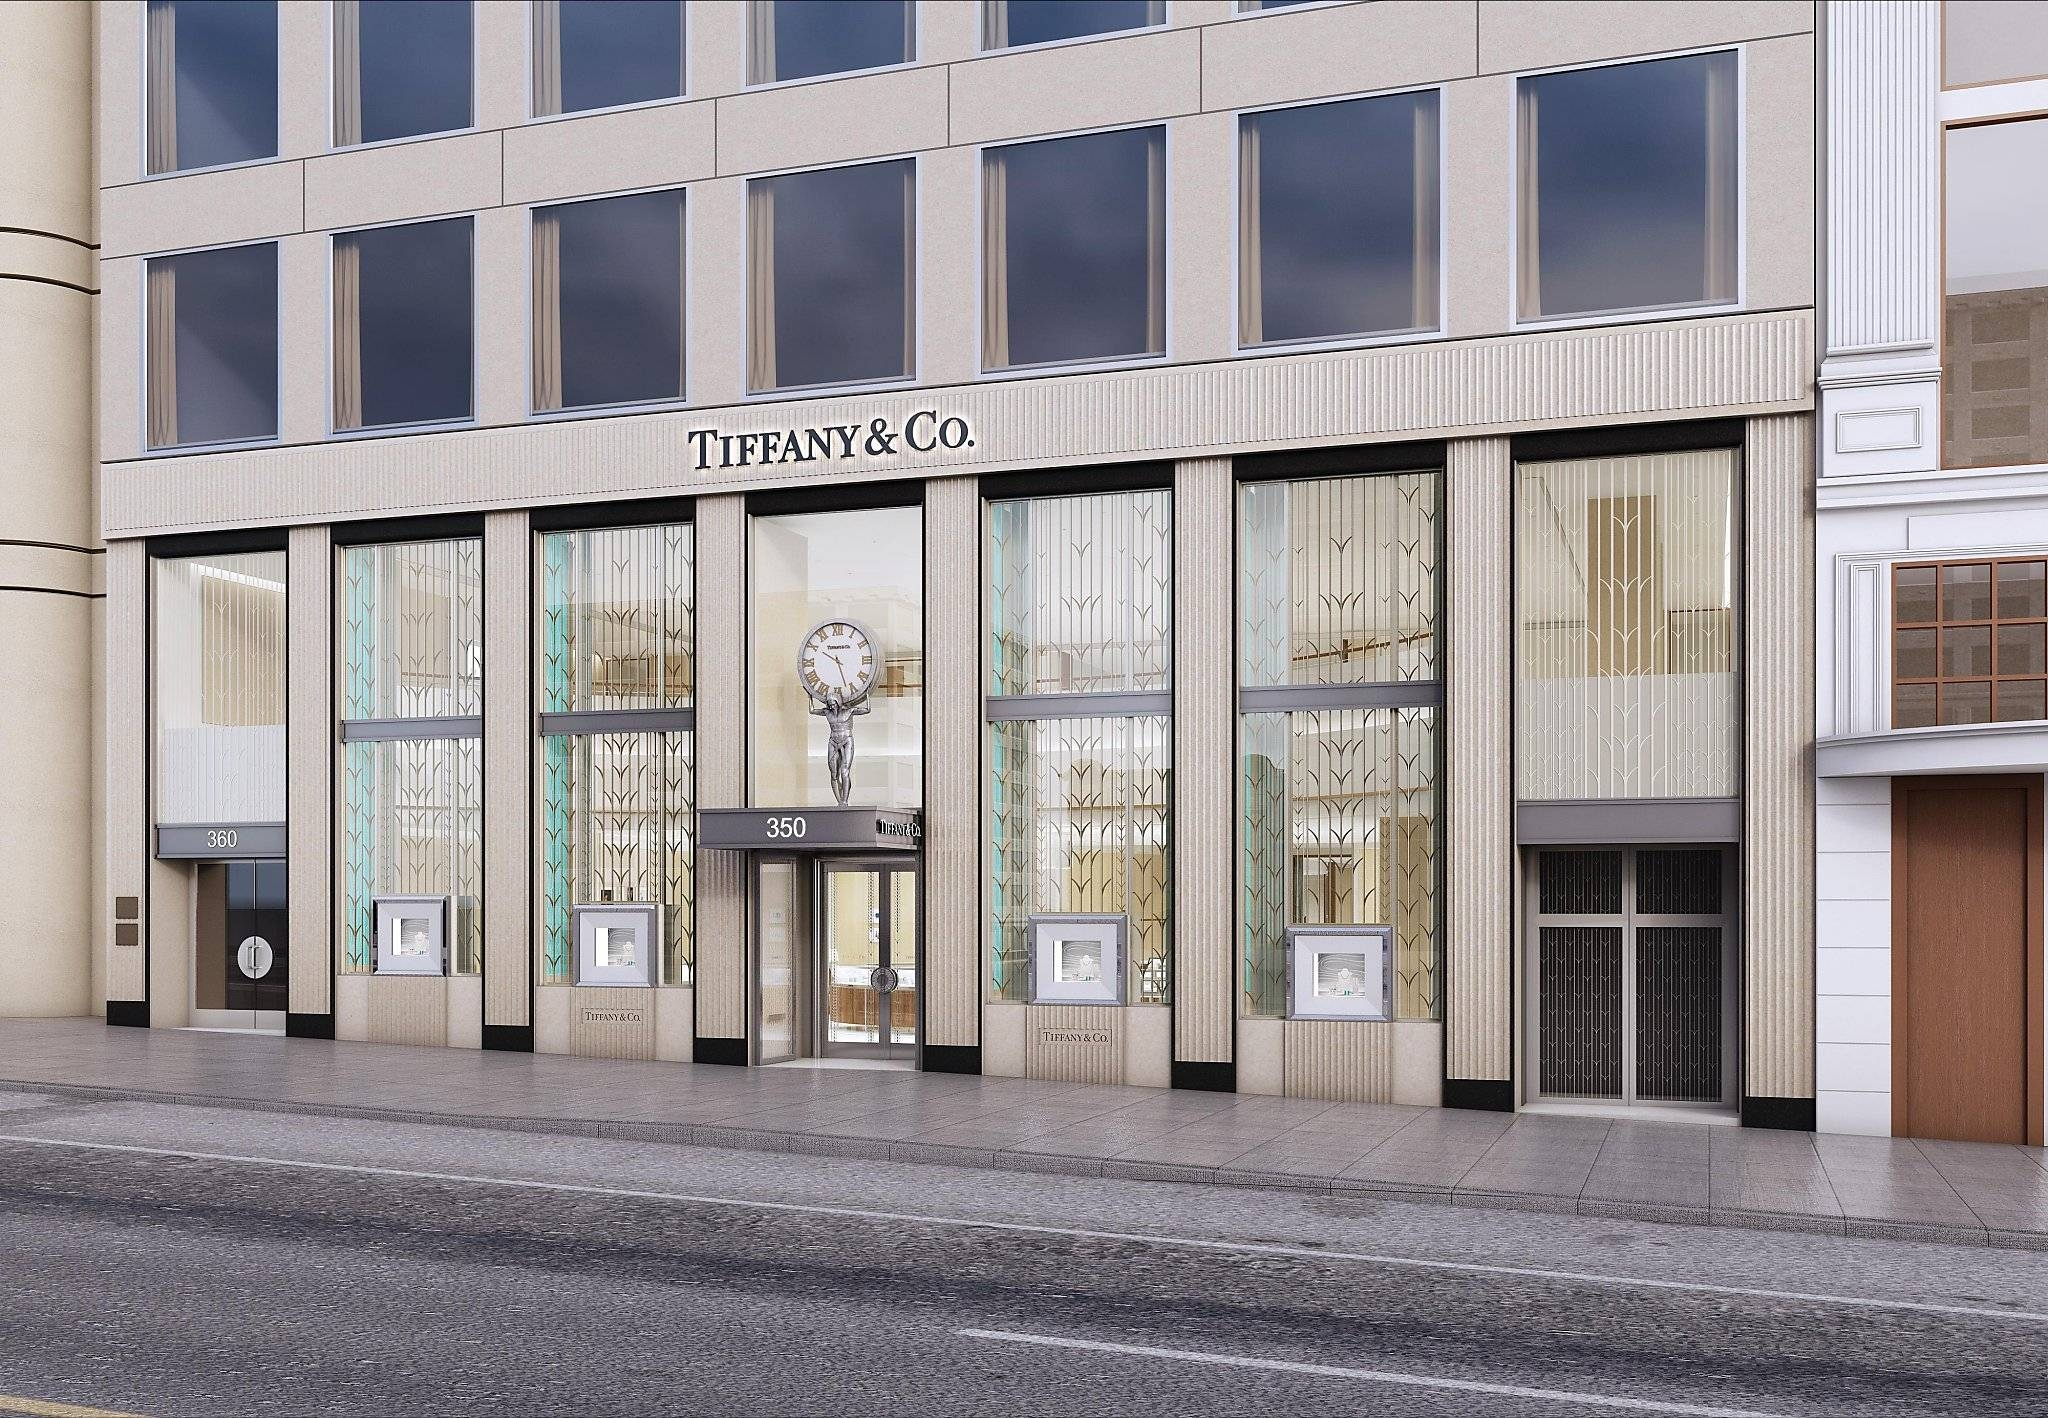 Tiffany's Splashy Union Square Remodel Unveiled – San Francisco Pertaining To Most Recent Tiffany And Co Wall Art (View 26 of 30)